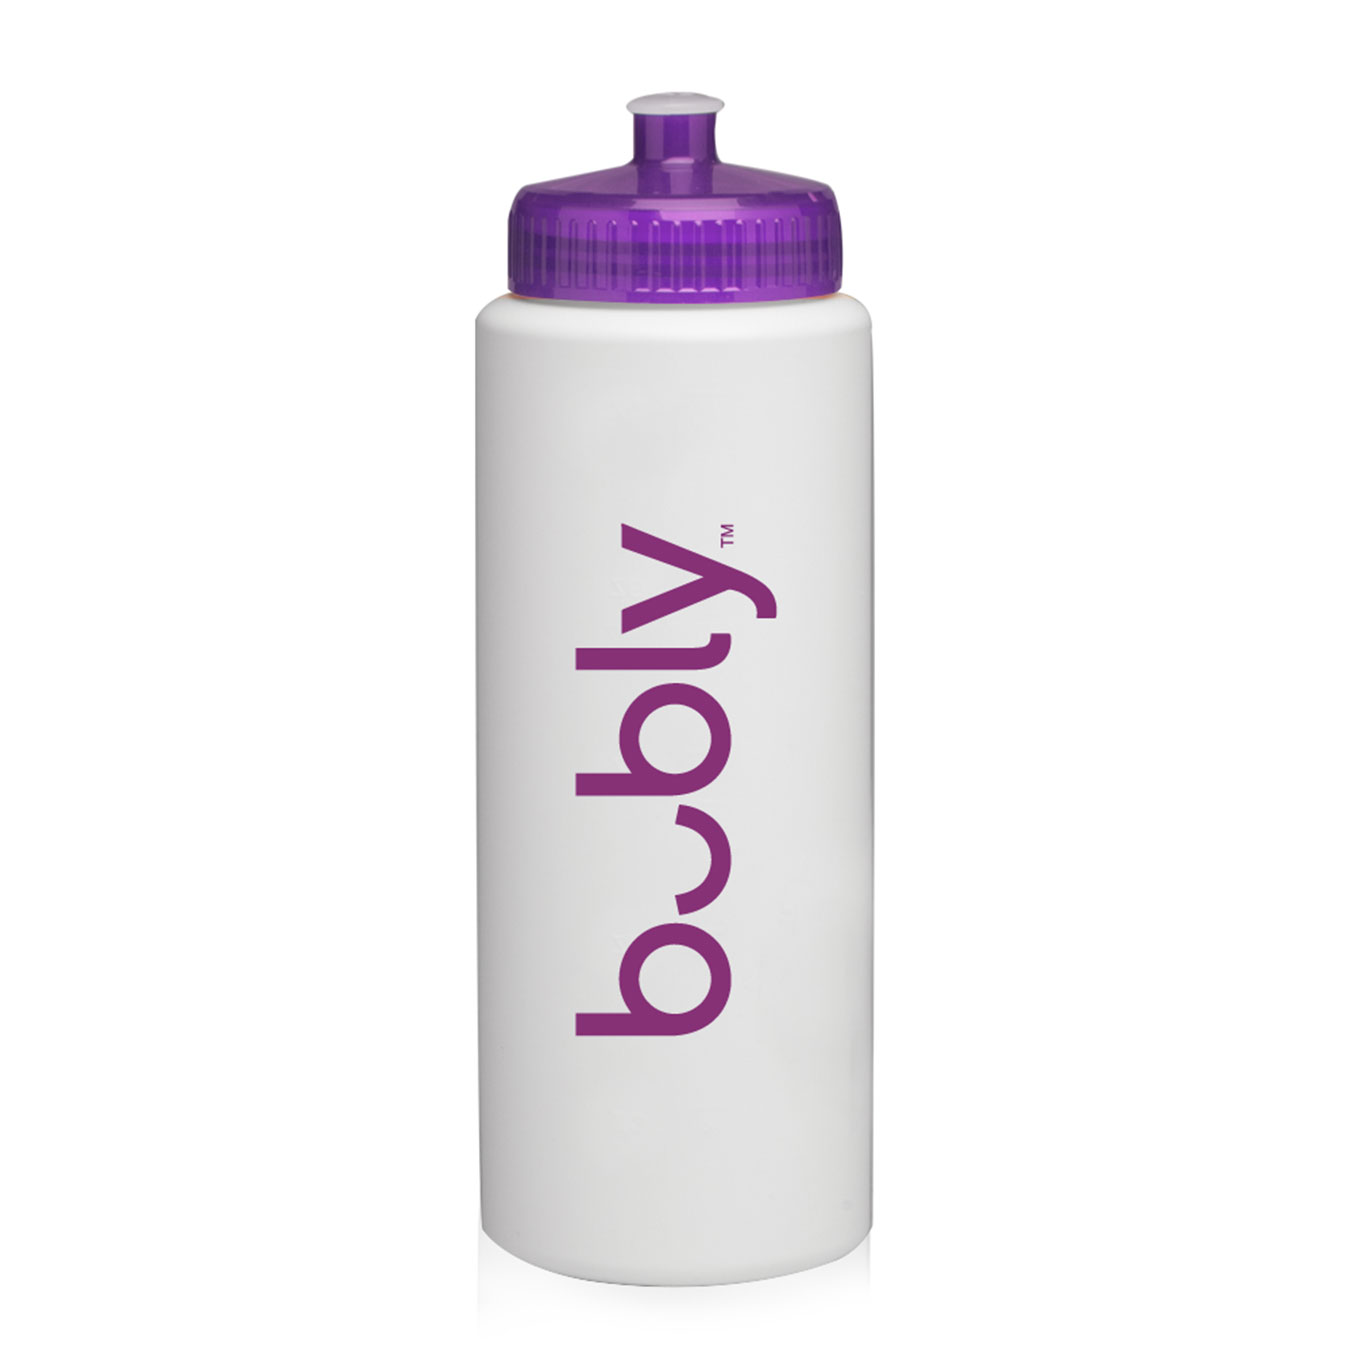 32 oz. HDPE Plastic Sports Water Bottle - Bubly